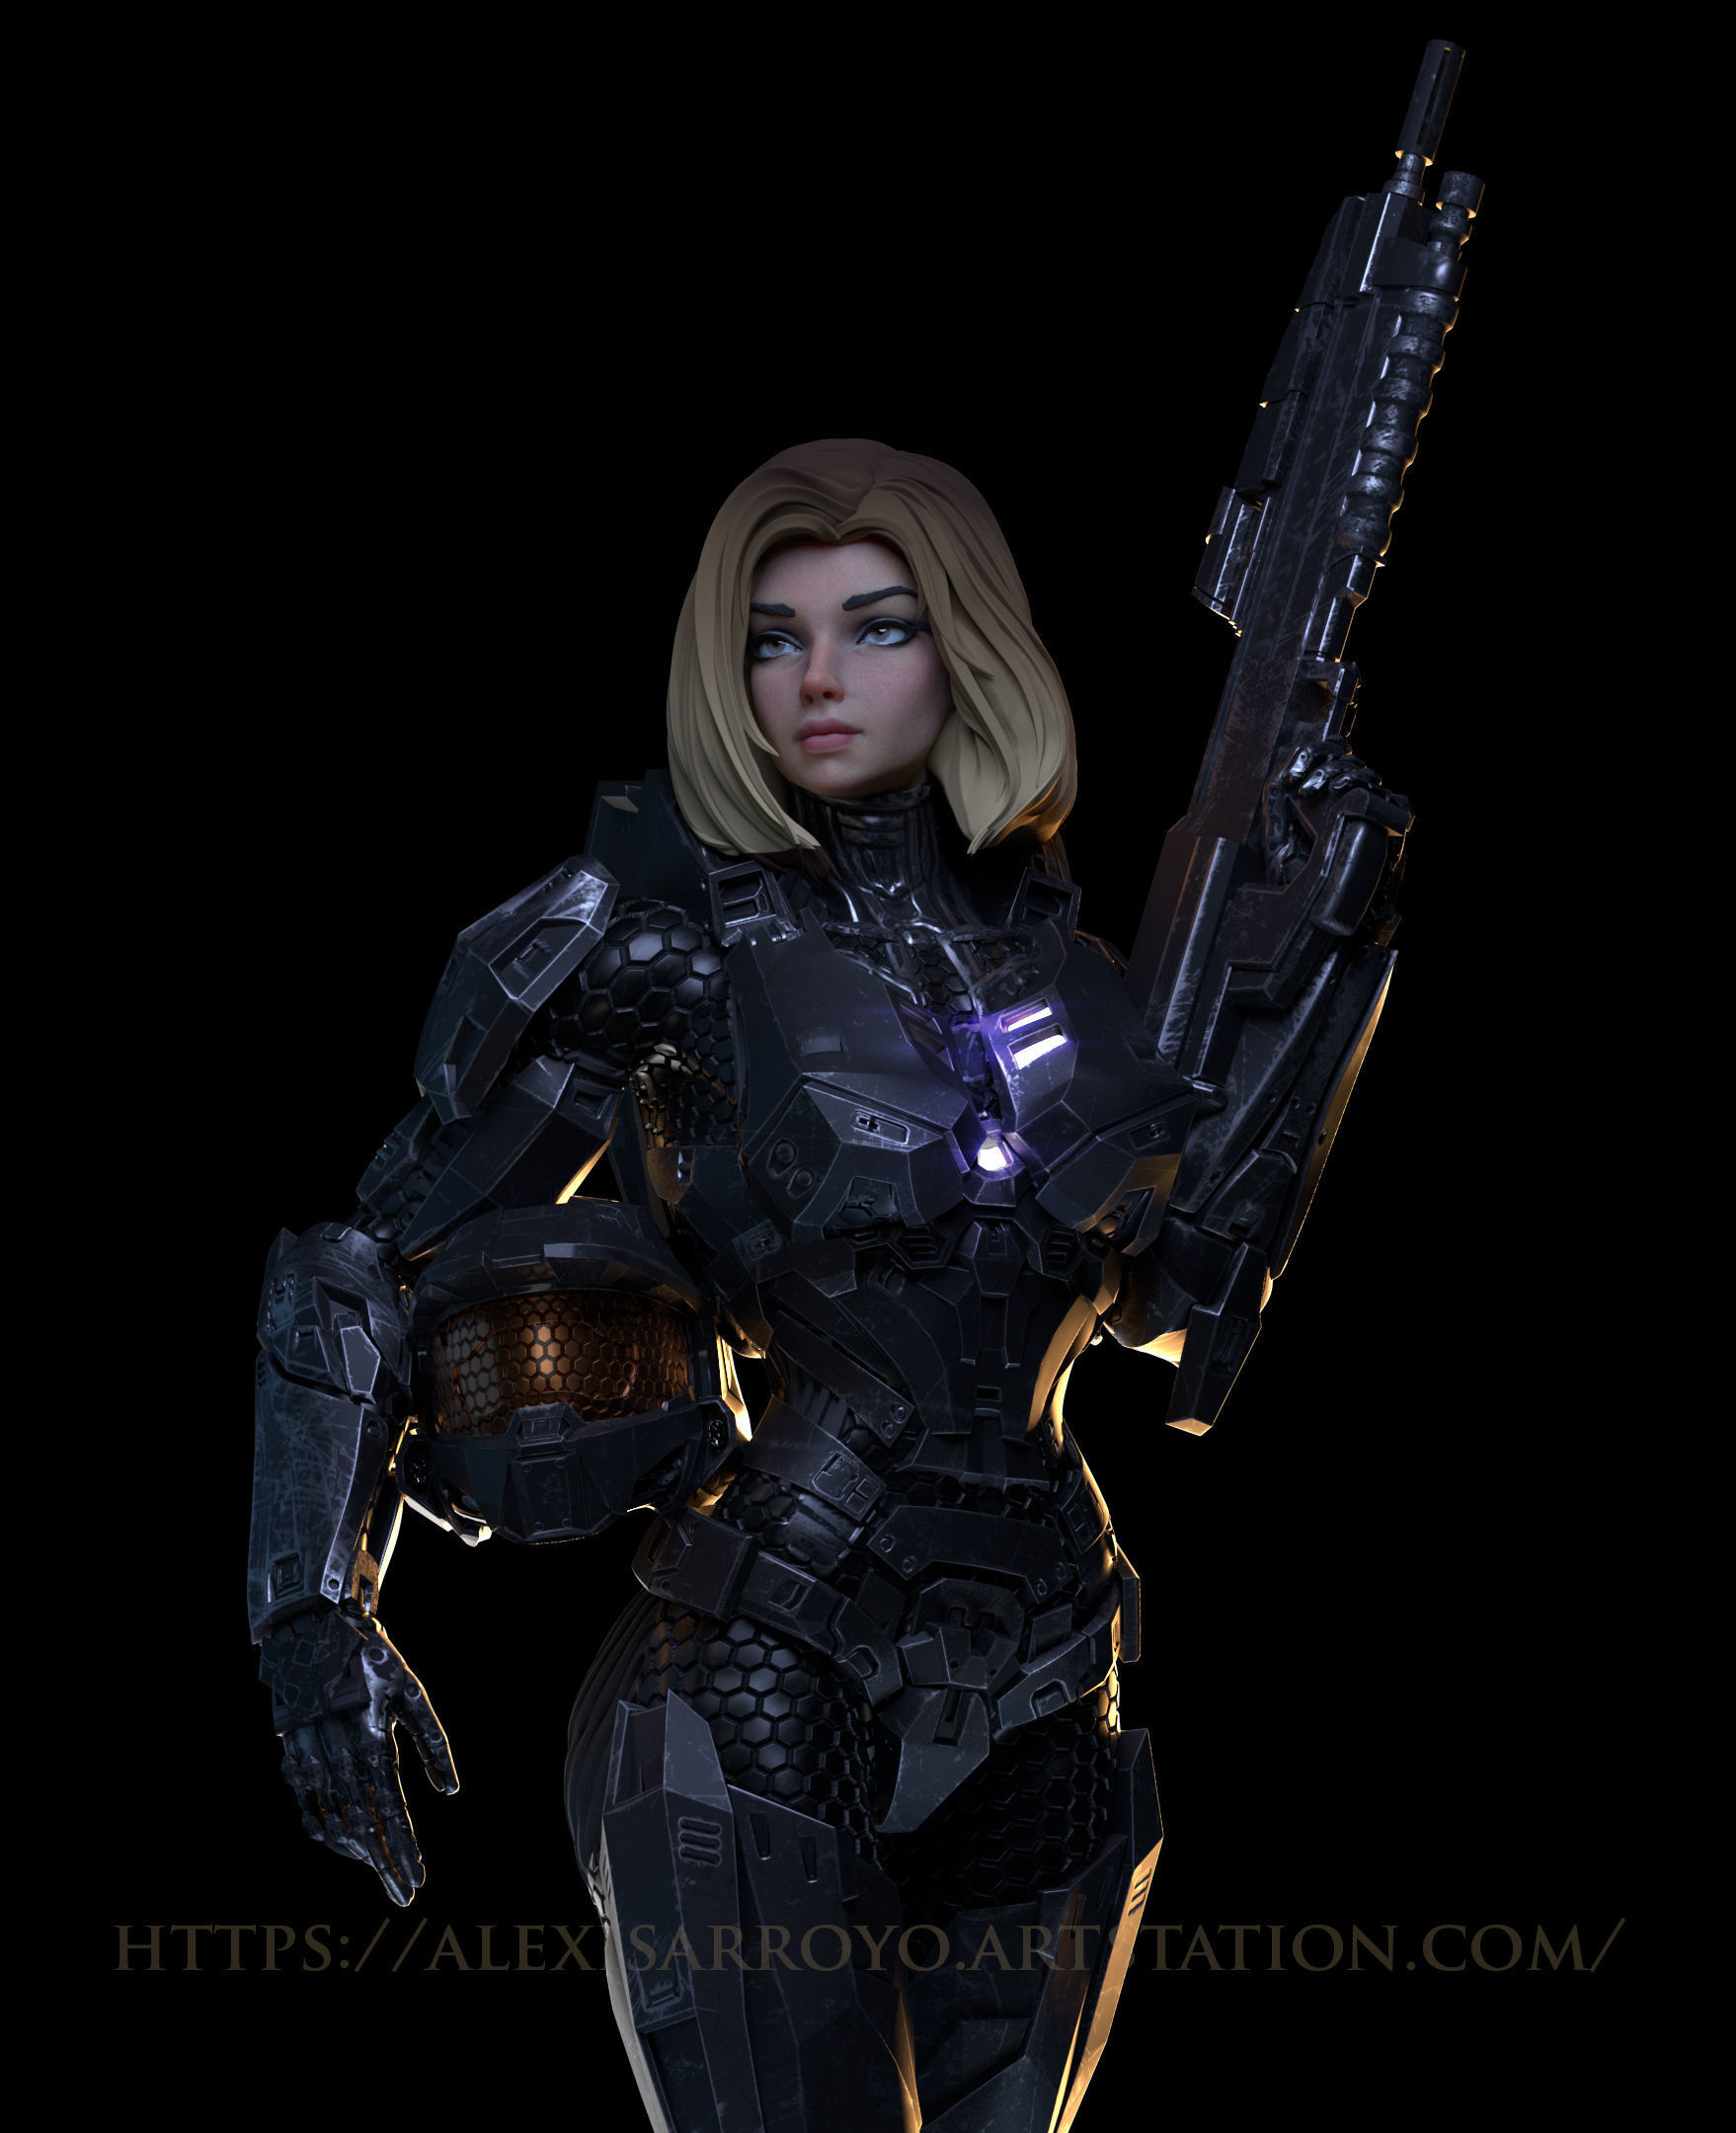 Female Halo Spartan Armored